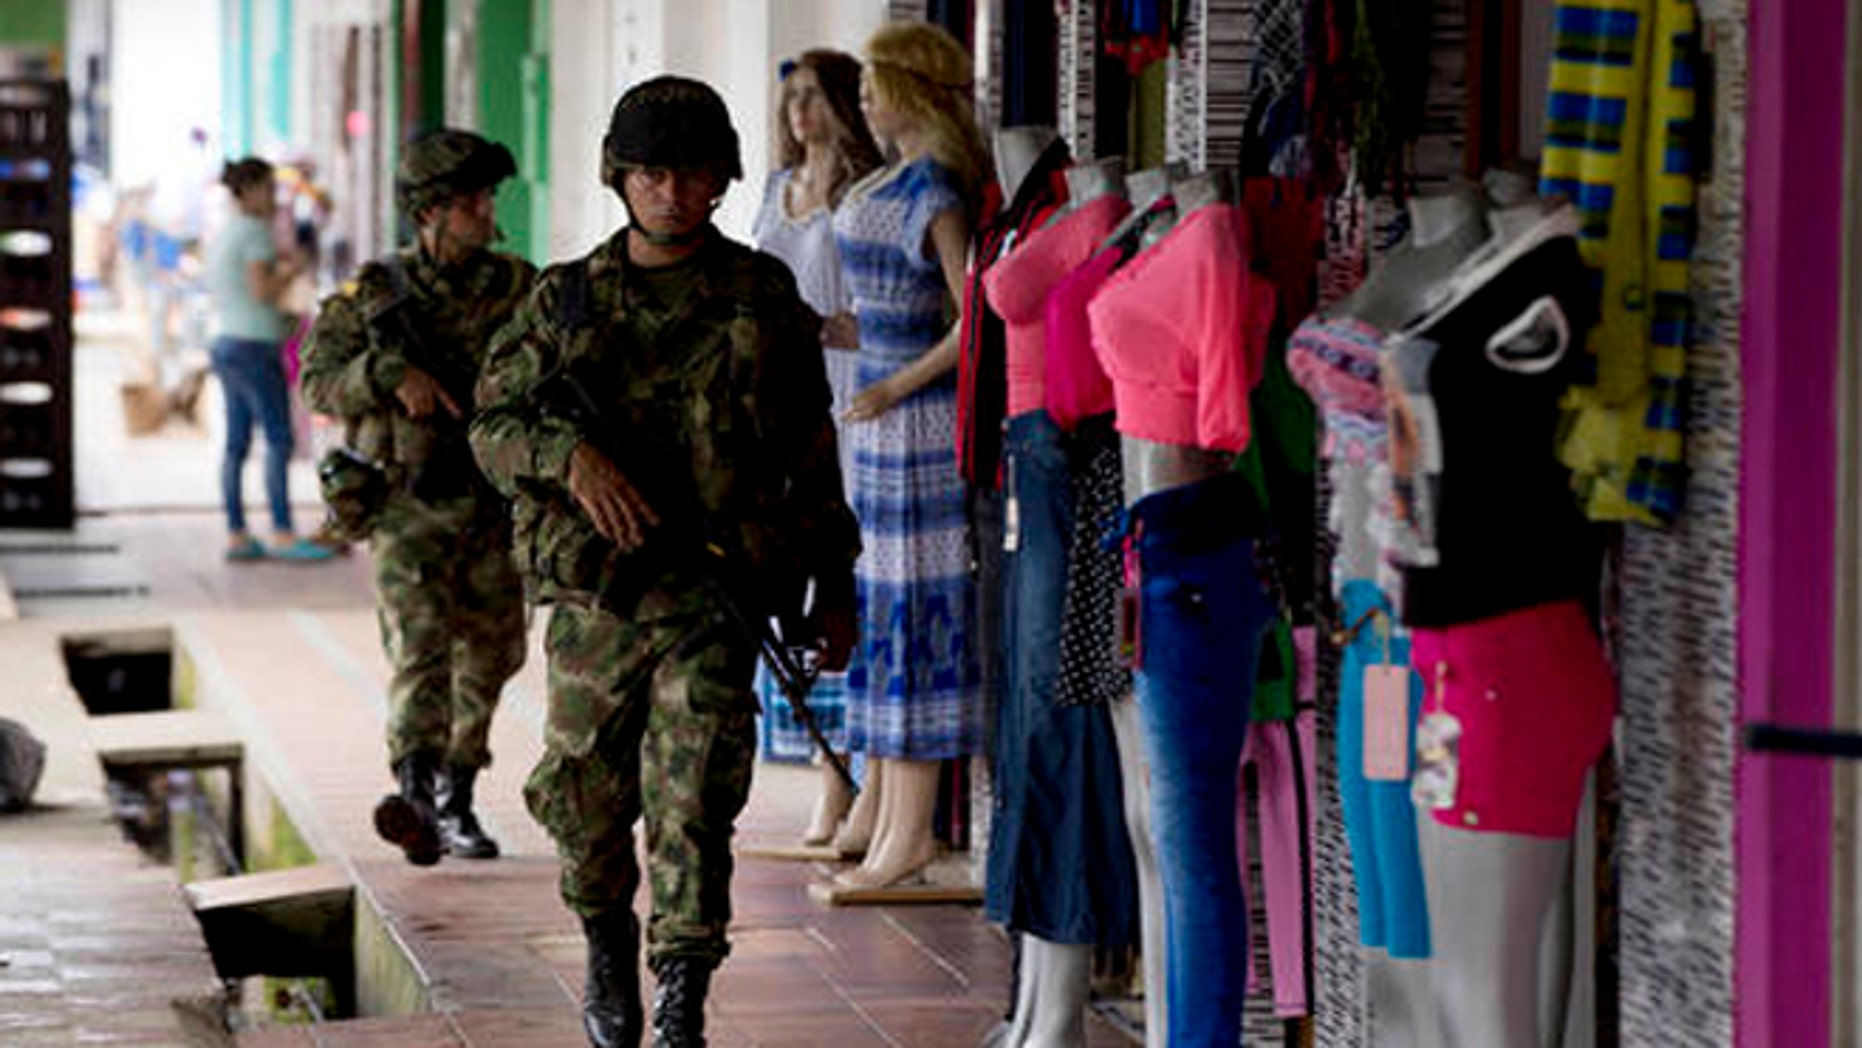 Soldiers patrol in Puerto Rico, southern Colombia, on Sept. 21, 2016 .